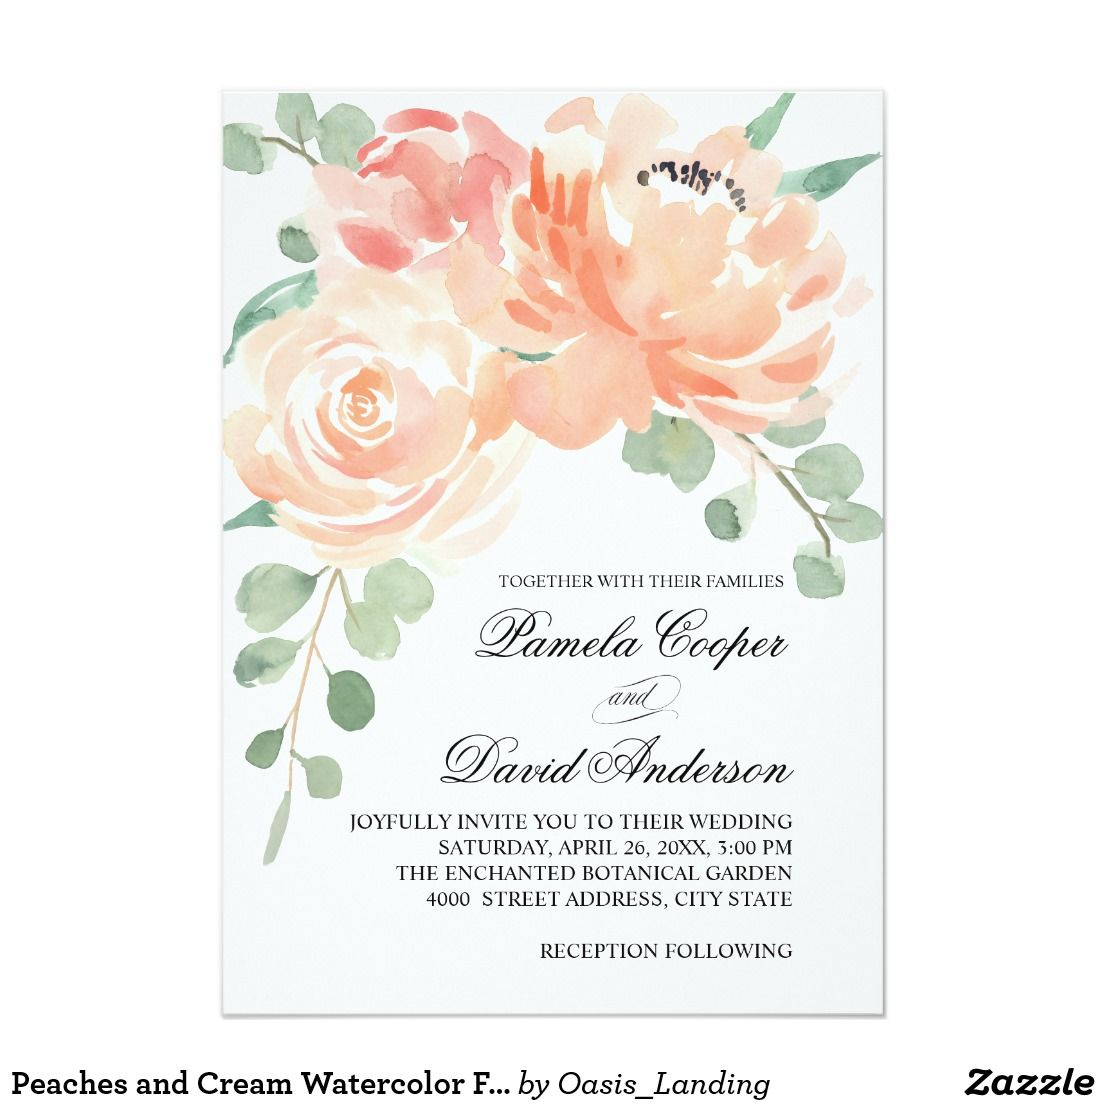 Luxury Watercolor Floral Wedding Invitations Wedding Ideas